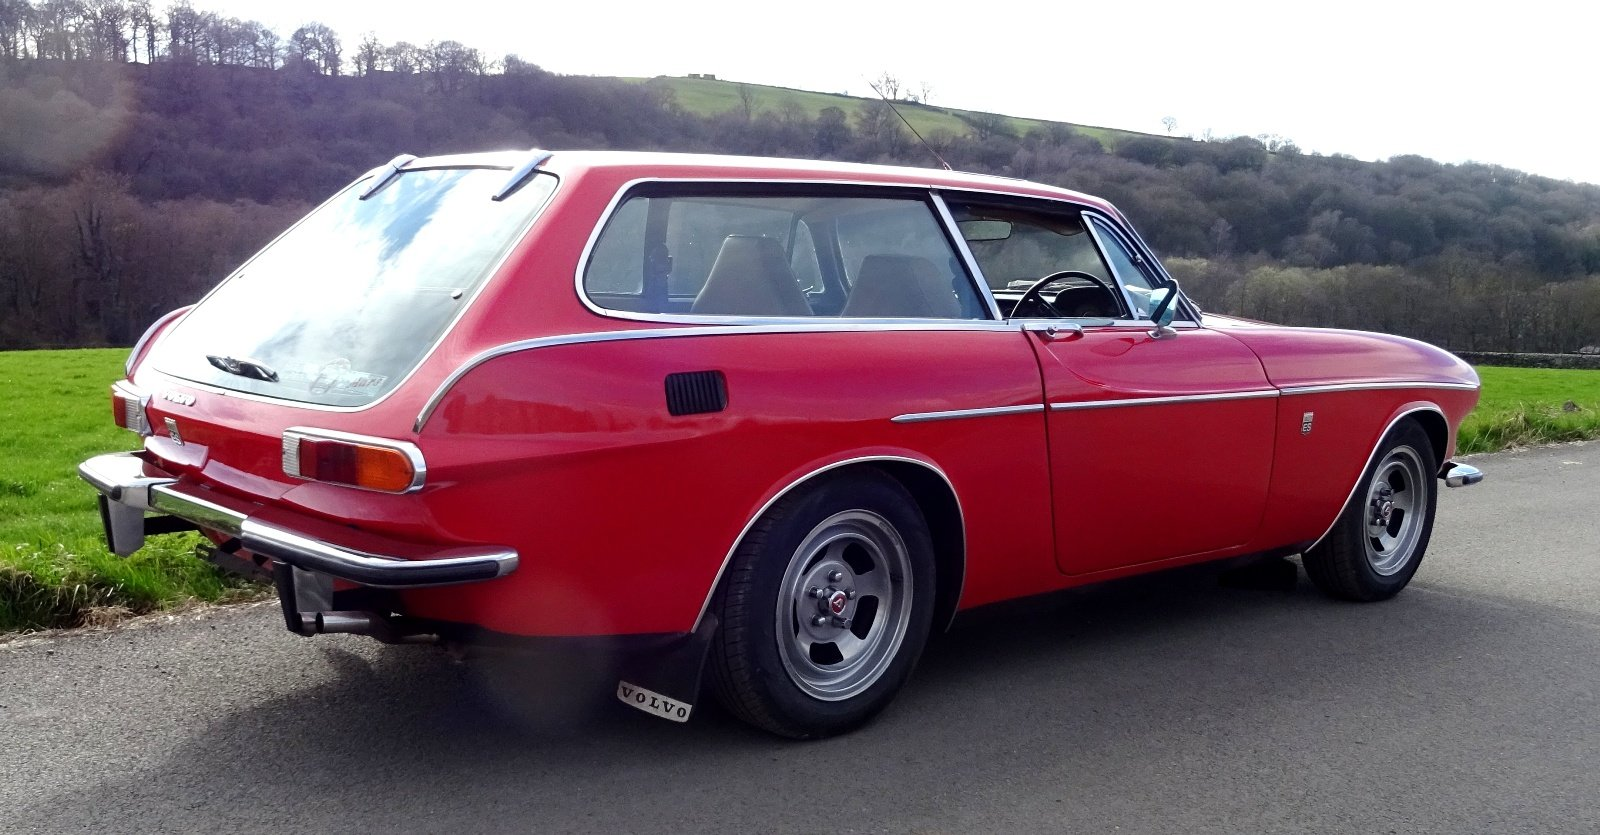 1971 VOLVO 1800 ES WELL CARED FOR LOADS OF HISTORY EASY LIFE For Sale (picture 4 of 6)